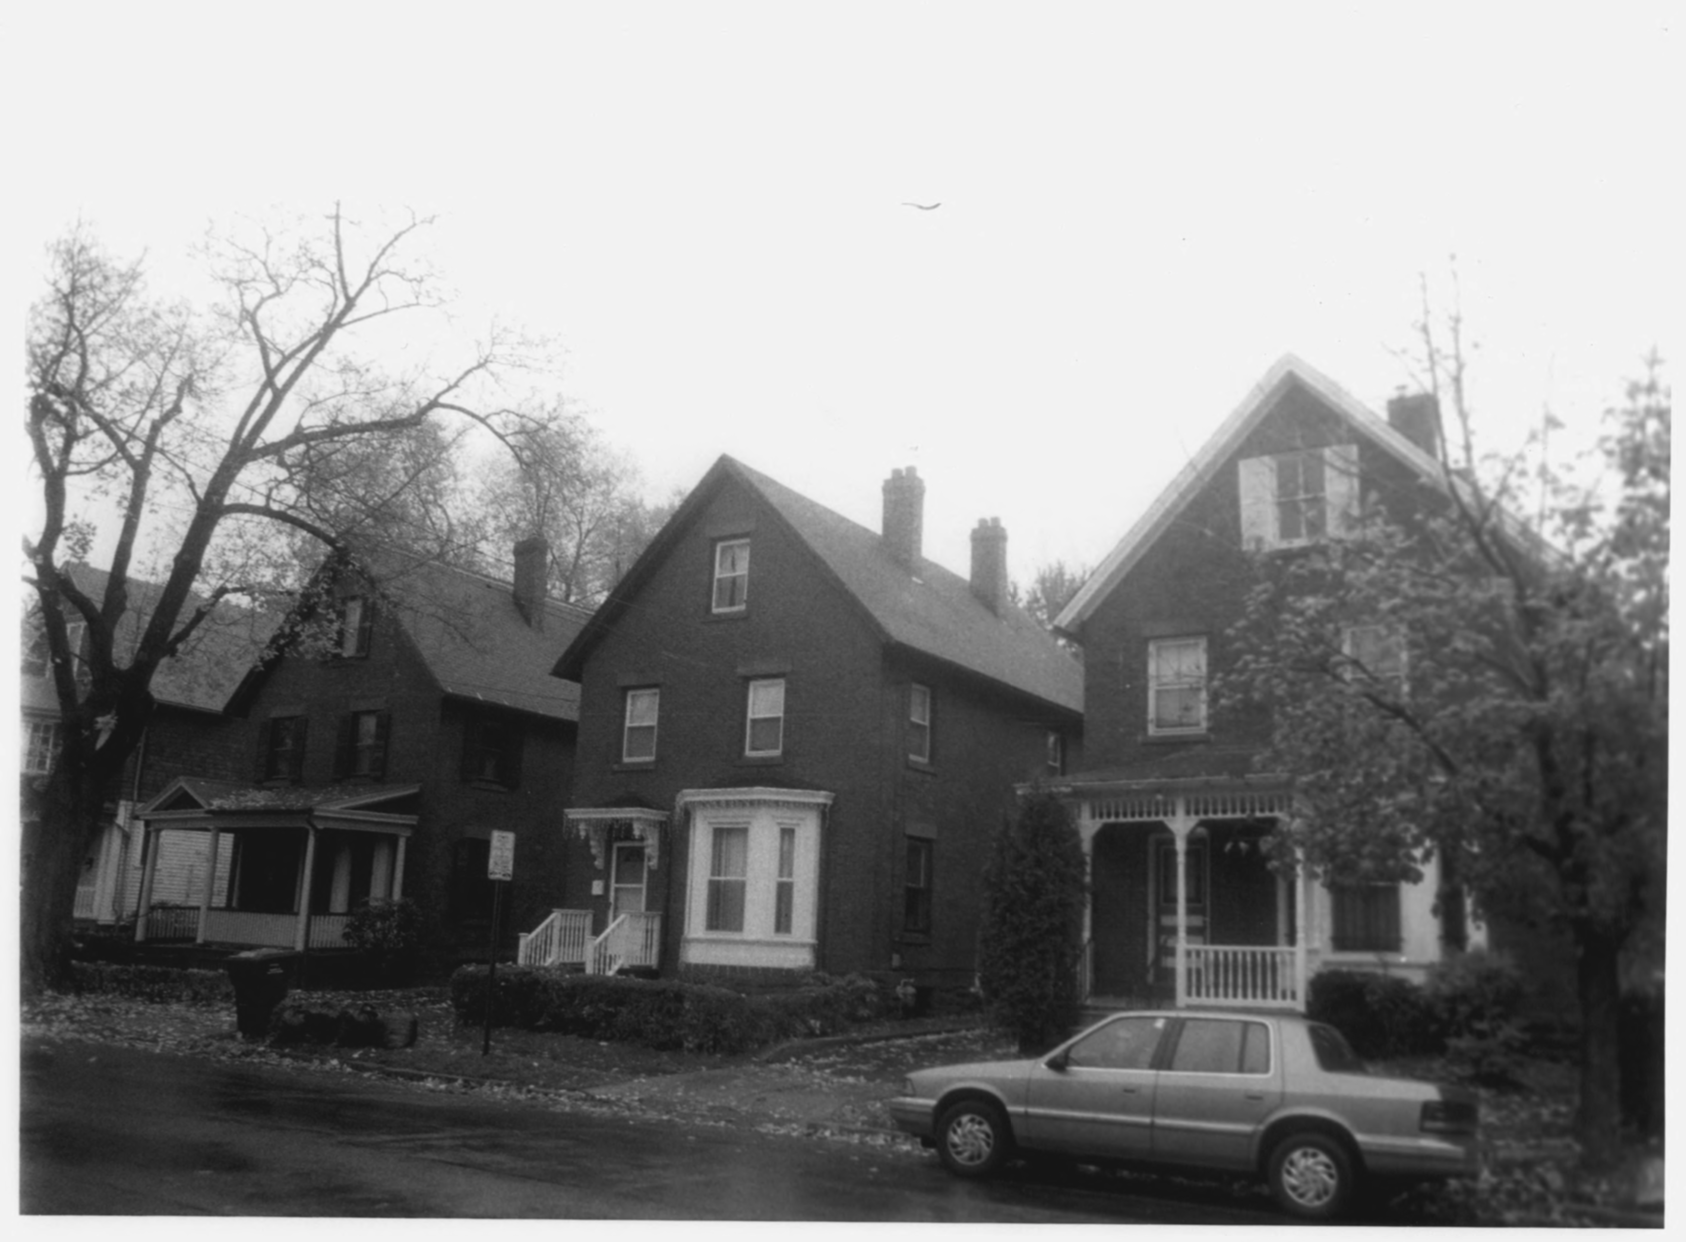 Allen Place - Lincoln Street Historic District Photo Record, Maintained by the NPS, Photo 11